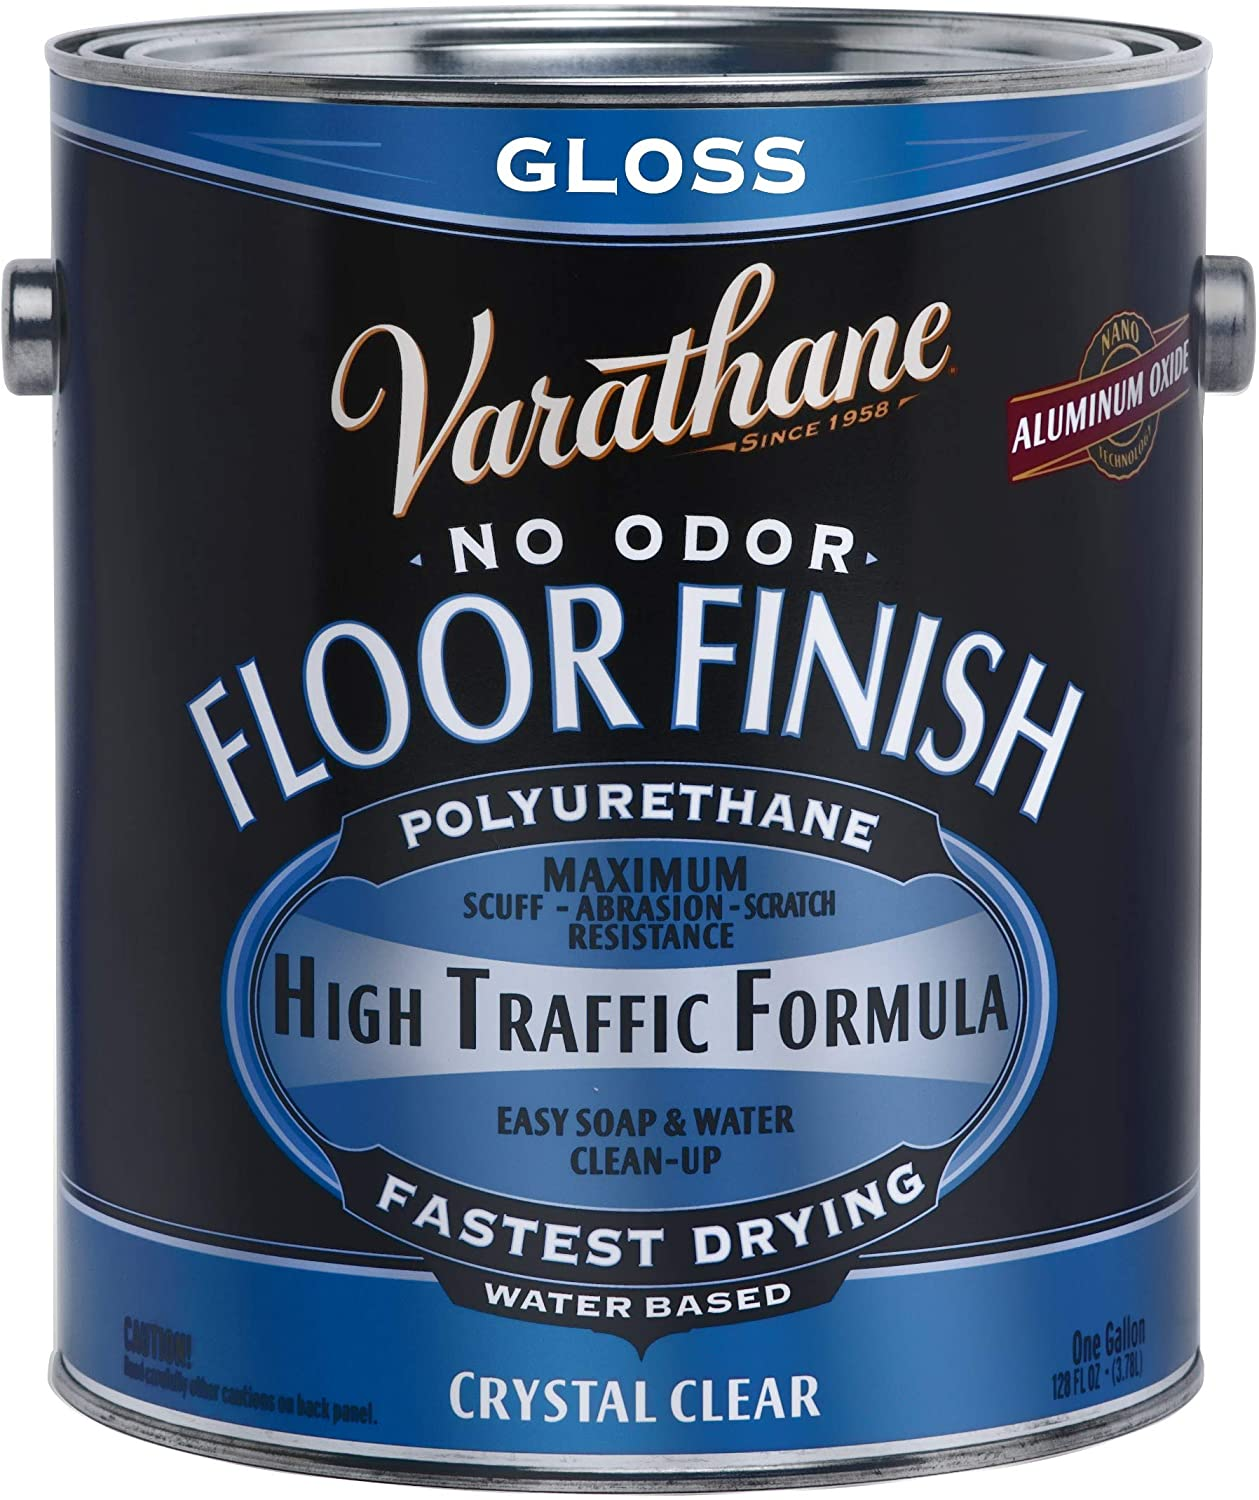 RUST-OLEUM Varathane Crystal Clear No Odor Floor Finish review